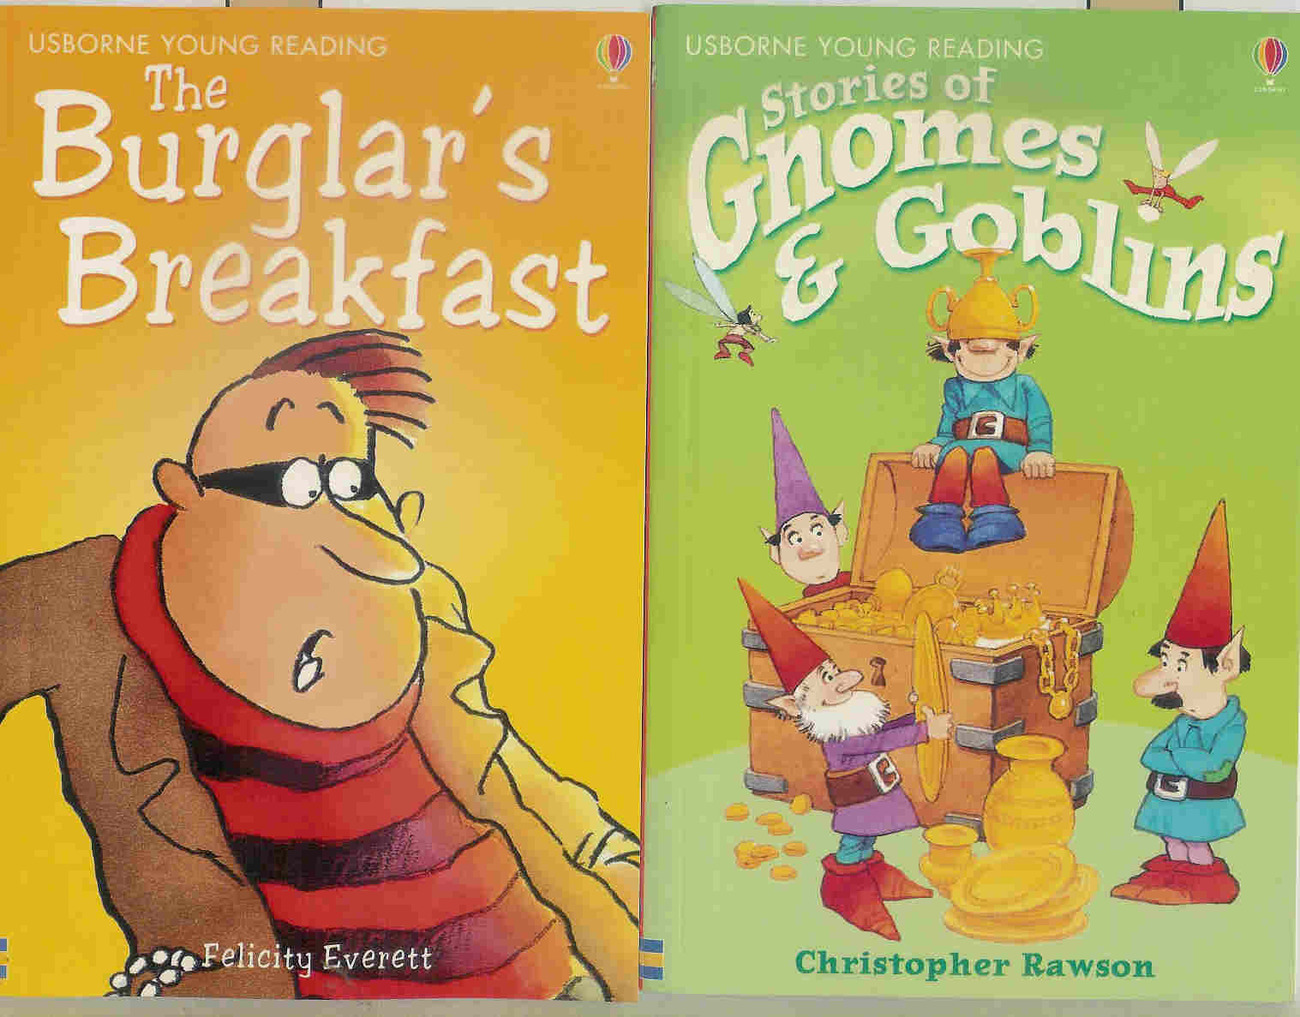 Young Reading 6 Books - Gnomes & Goblins,Wizards,Wizards, Incredible Present, Et